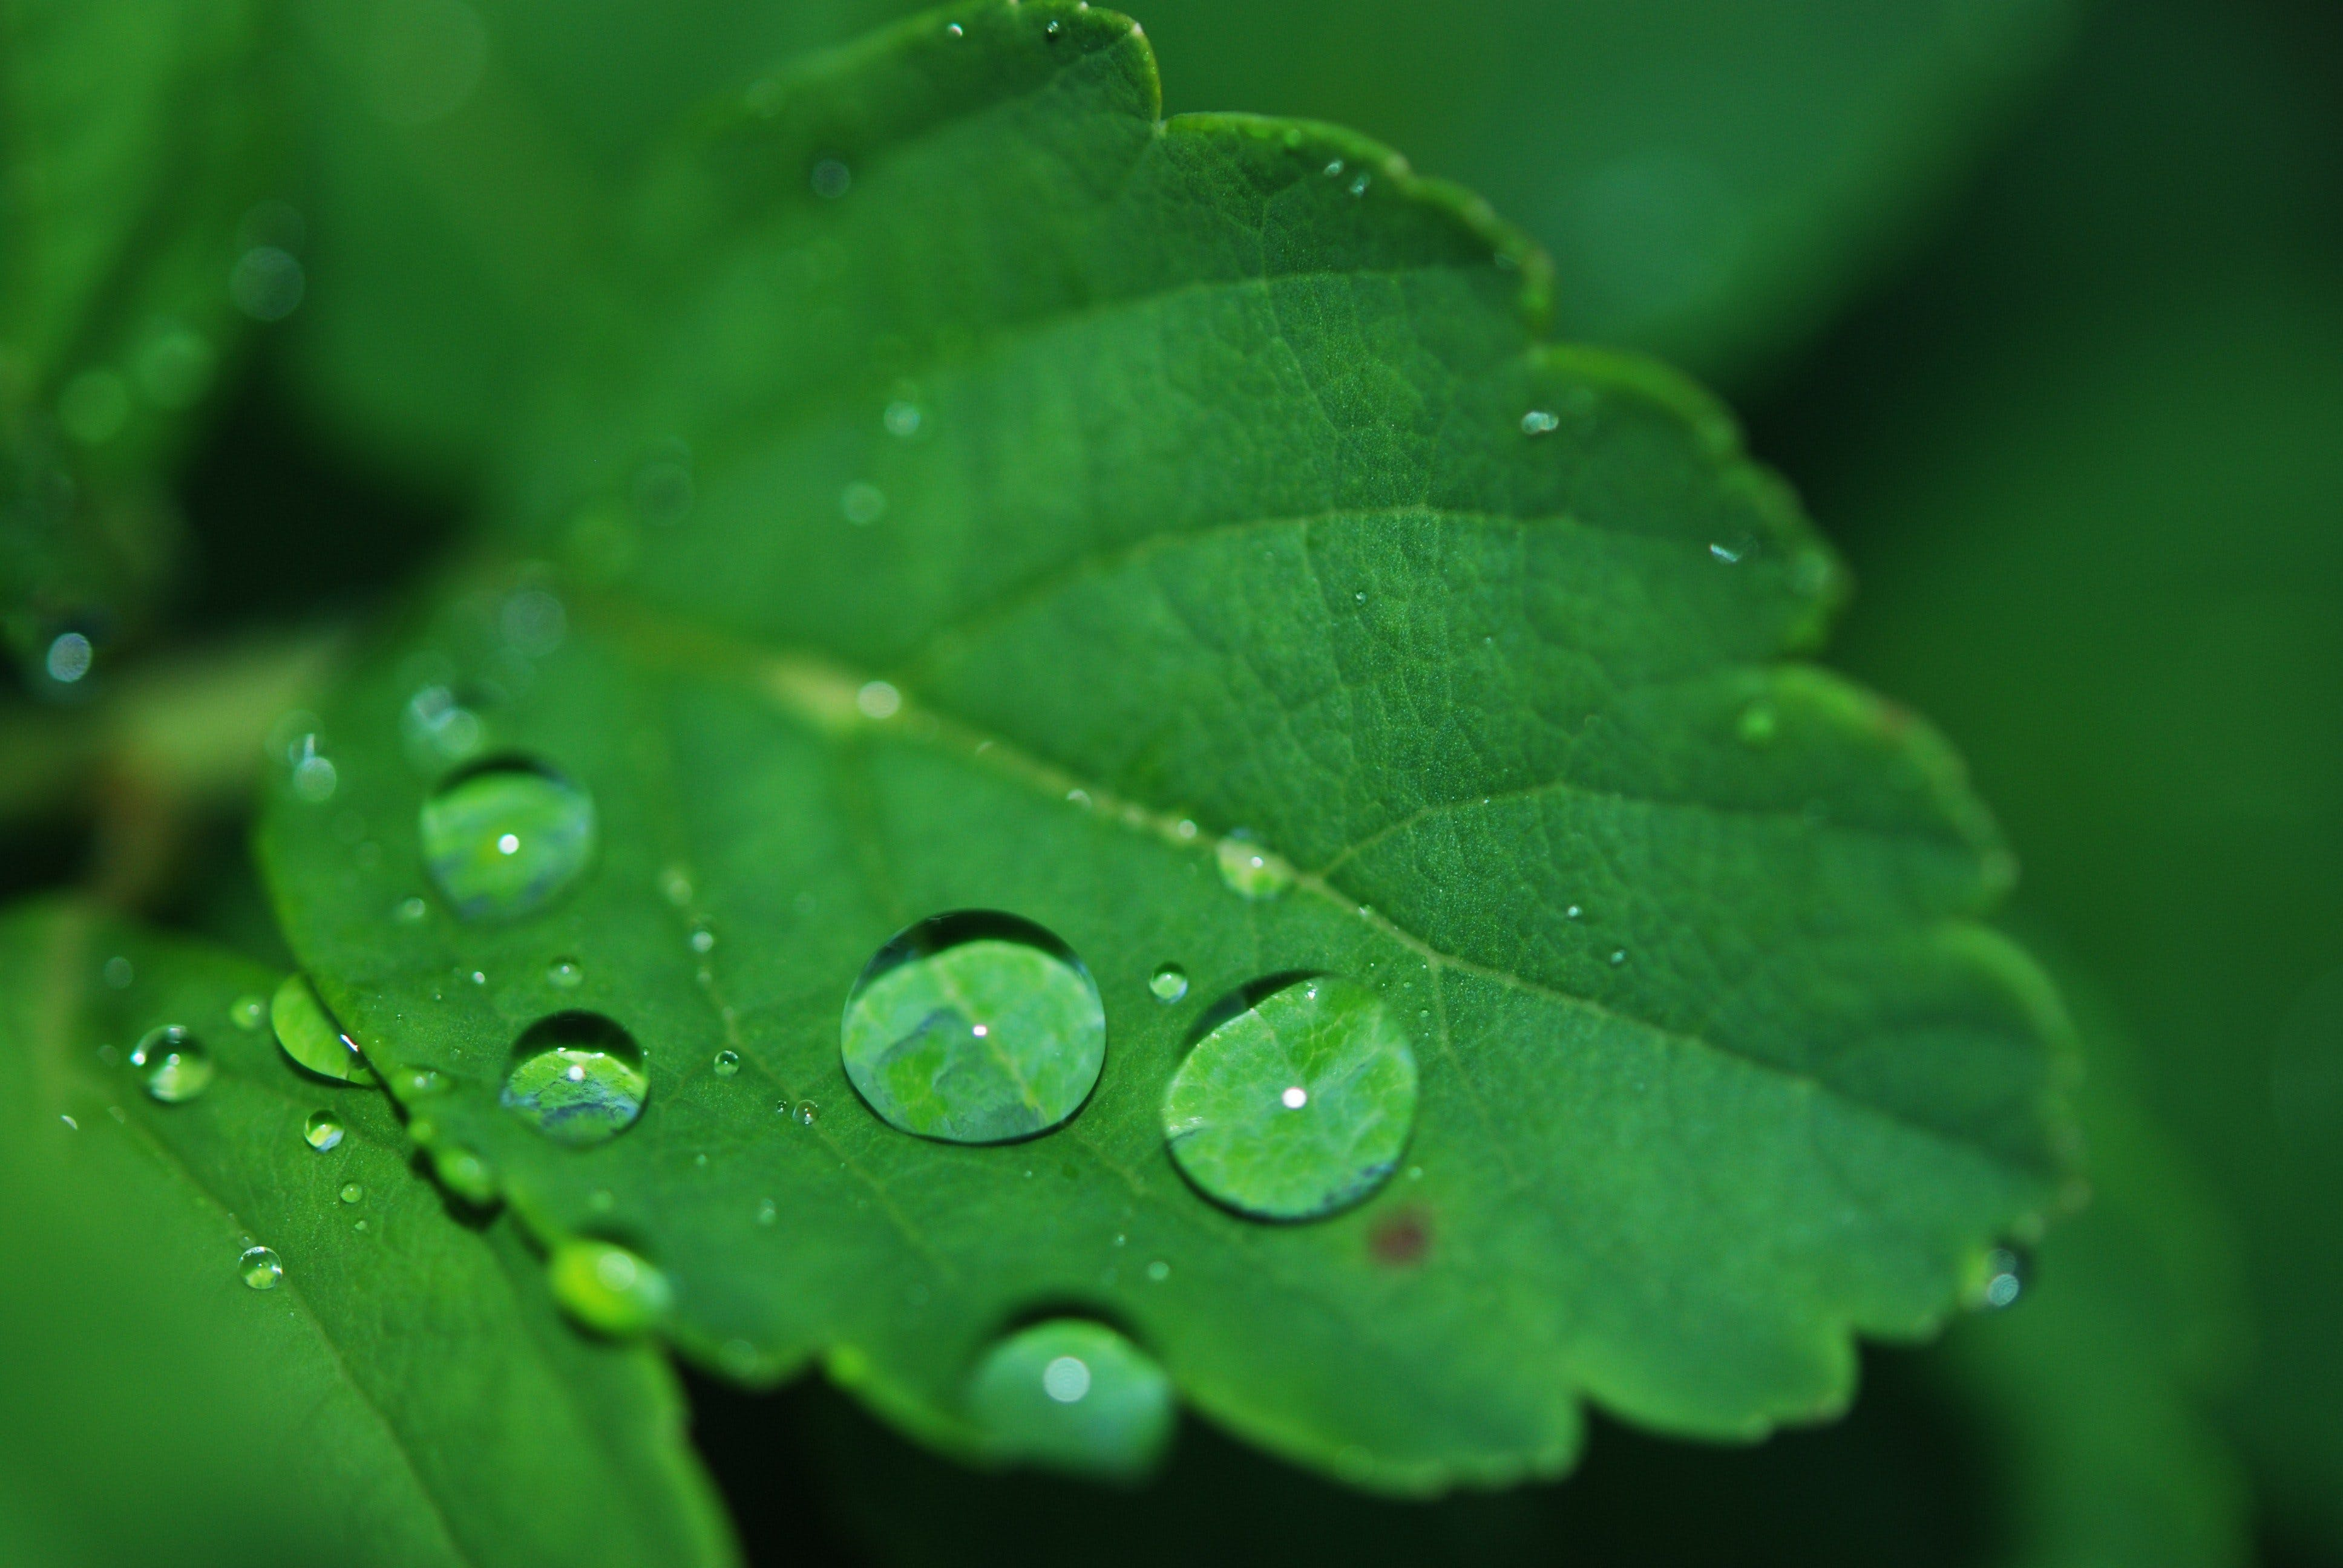 Free stock photo of nature, leaf, dew, green